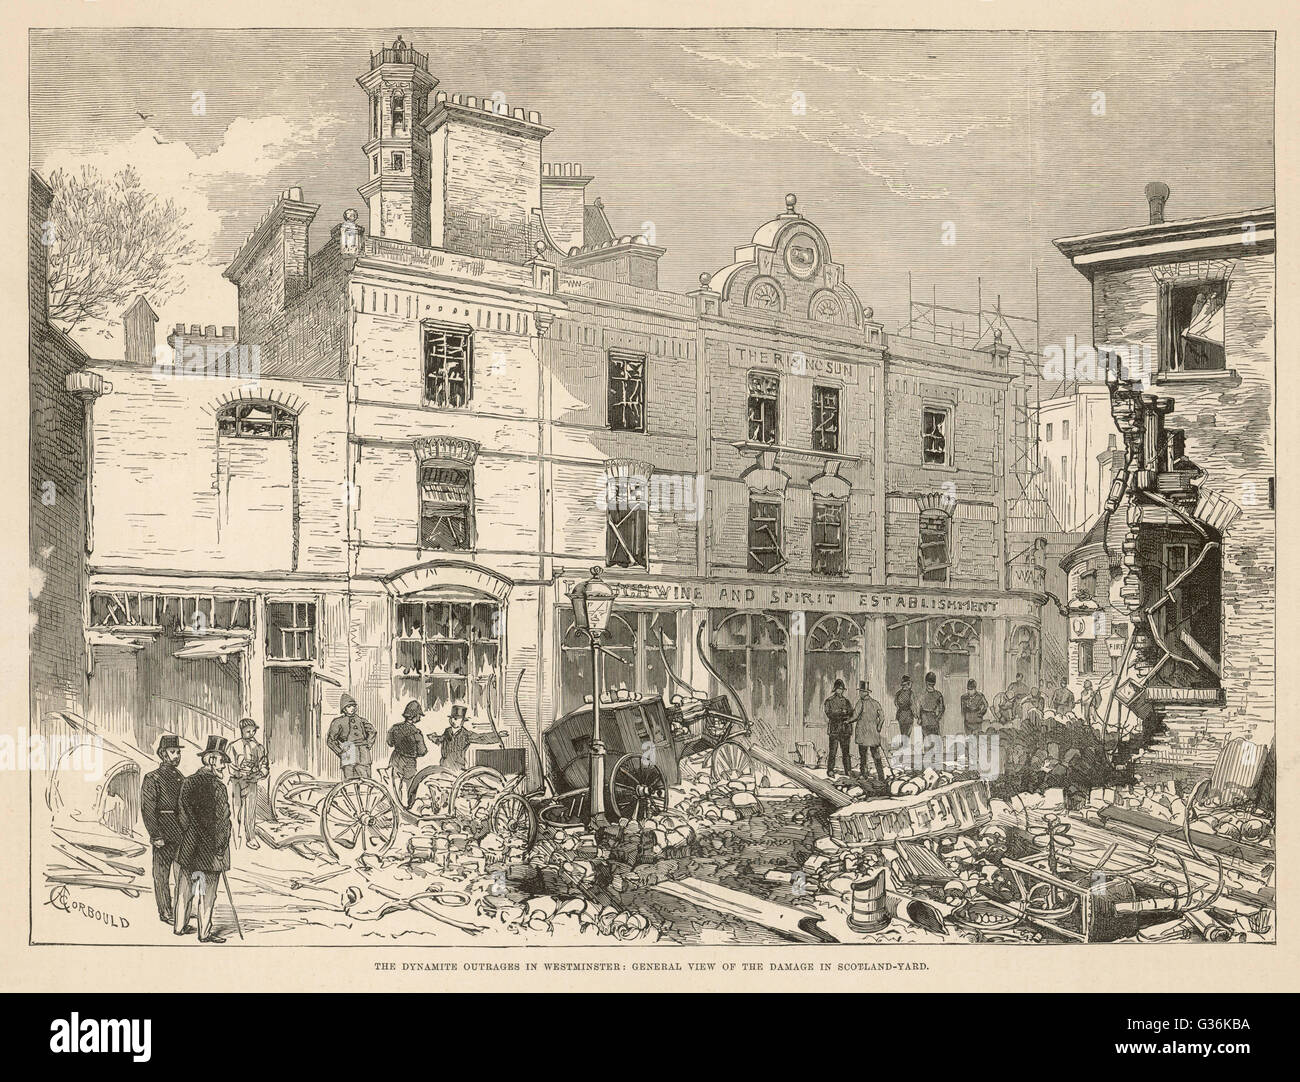 Fenian terrorism in England. Result of dynamite explosion  in Scotland Yard, Westminster        Date: 1884 - Stock Image